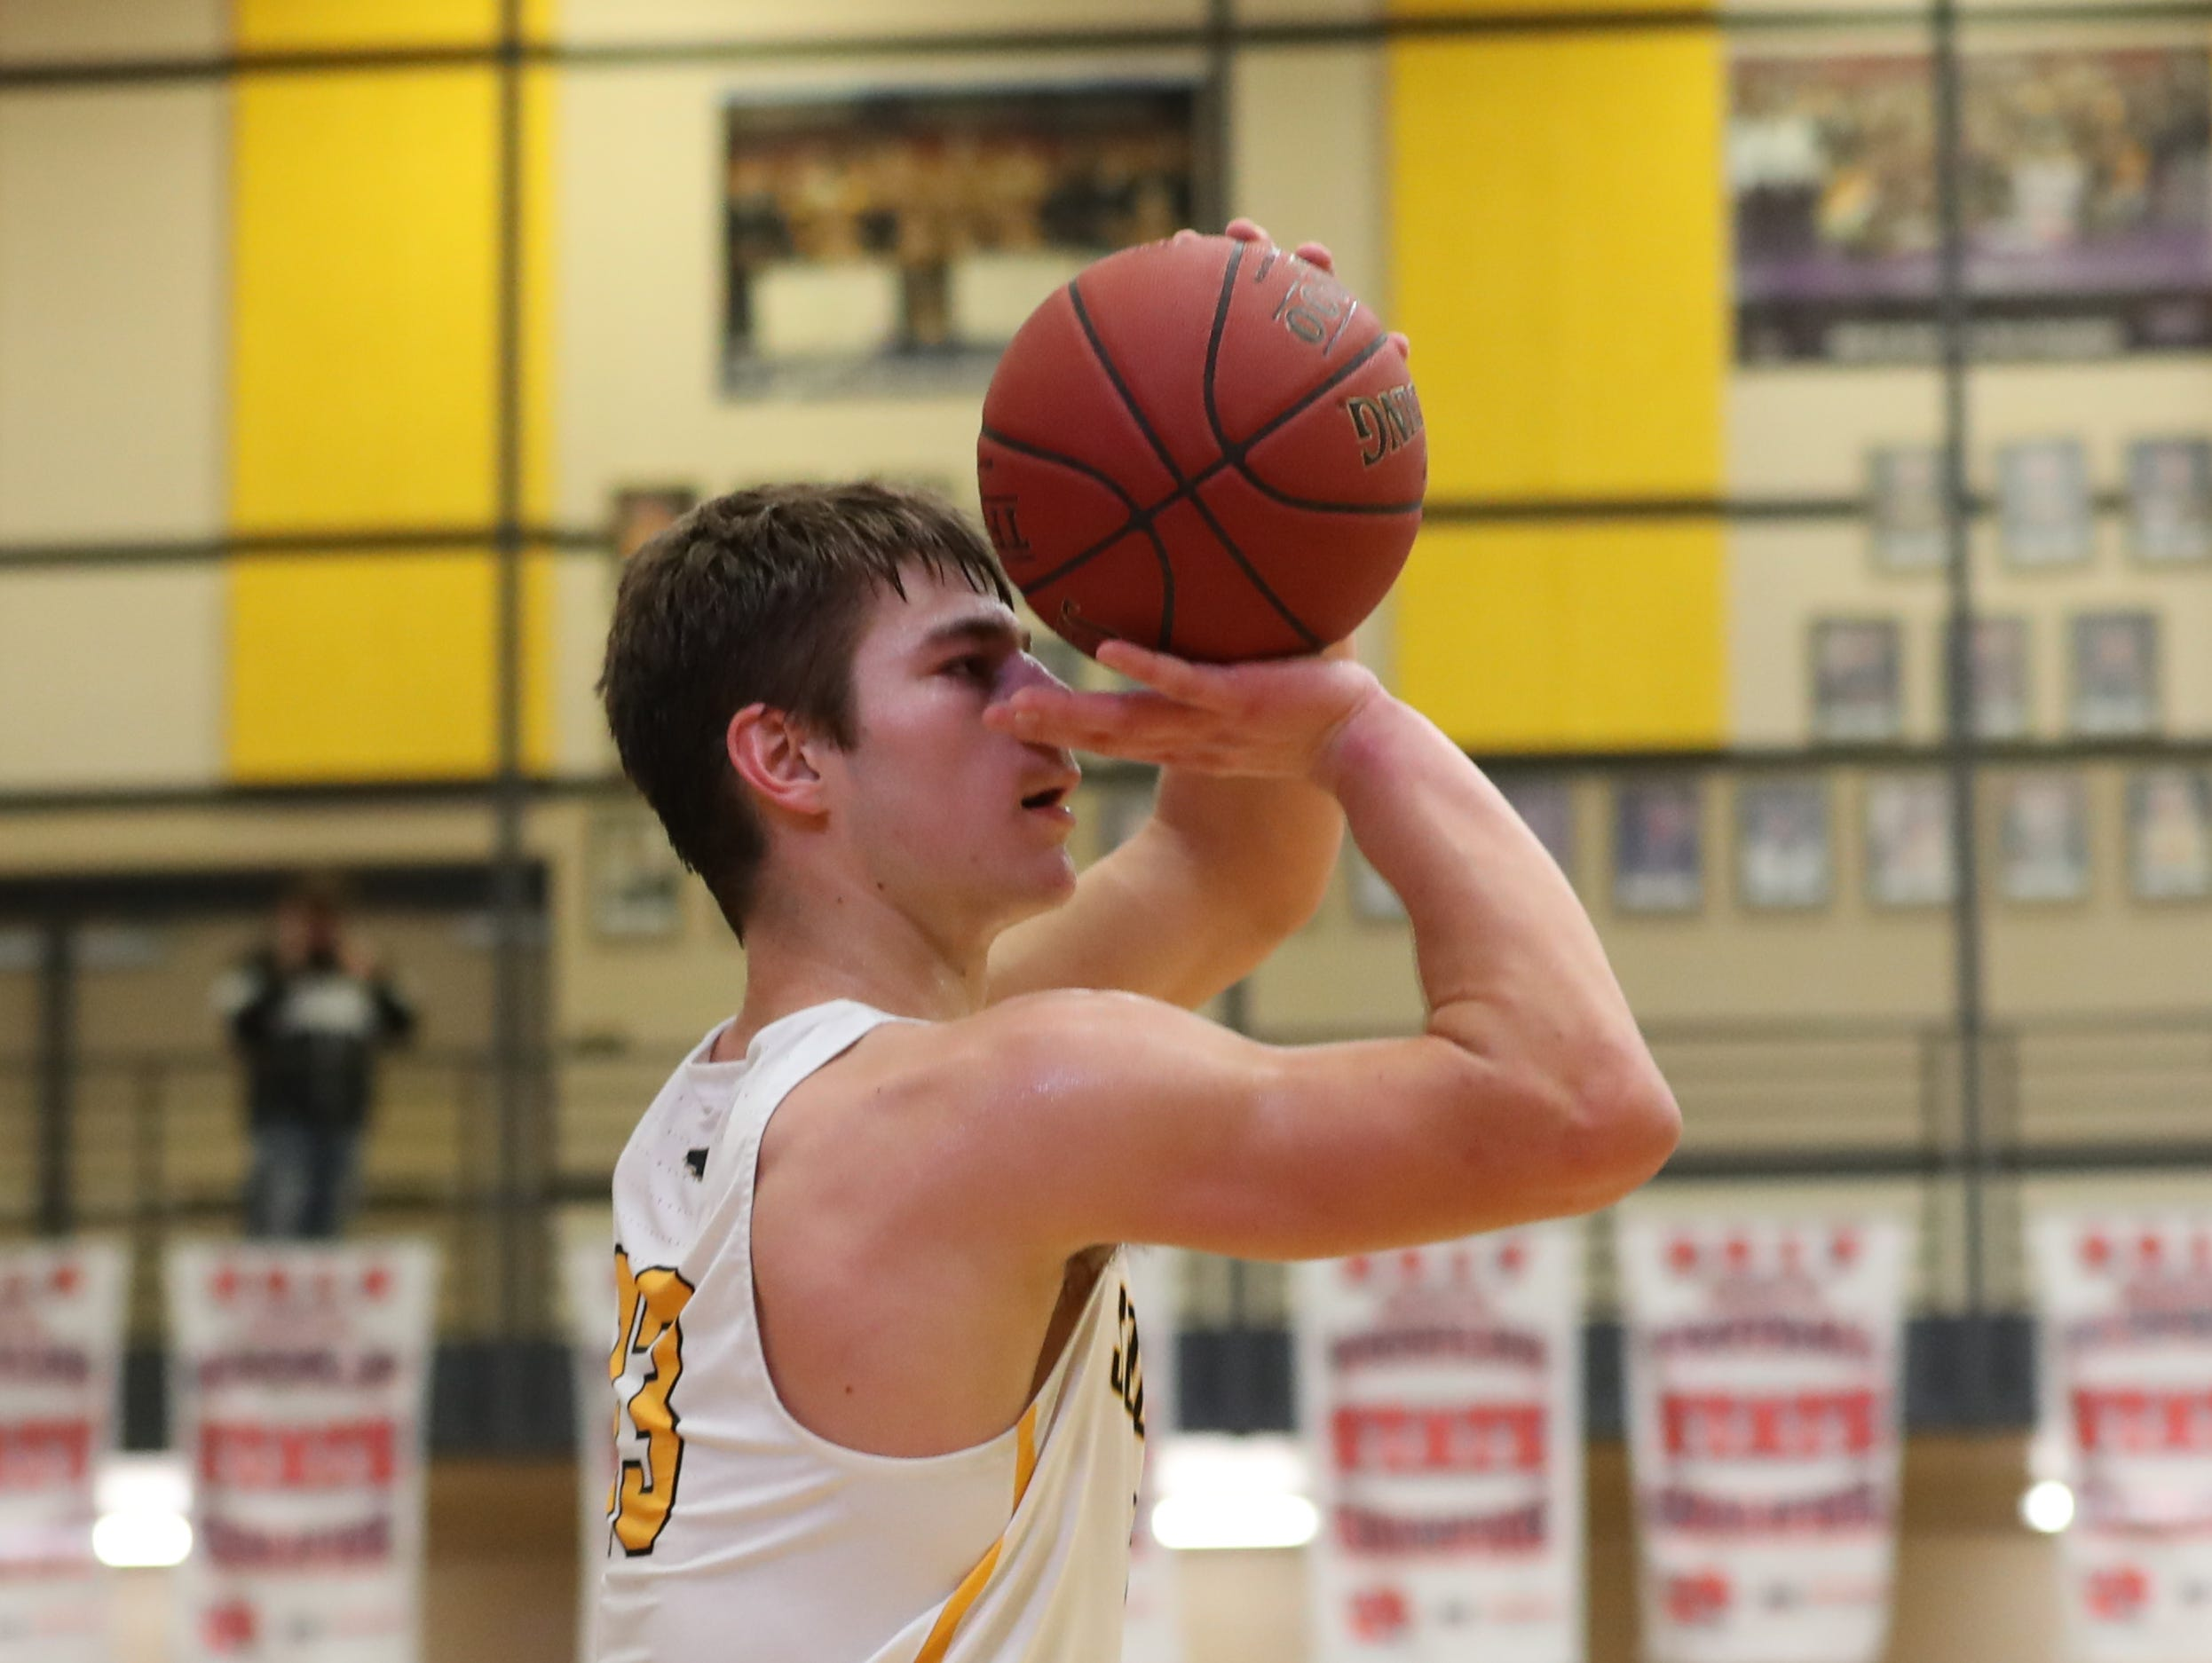 Southeast Polk Rams Dominic Caggiano (13) shoots a three against the Hoover Huskies at Southeast Polk High School.